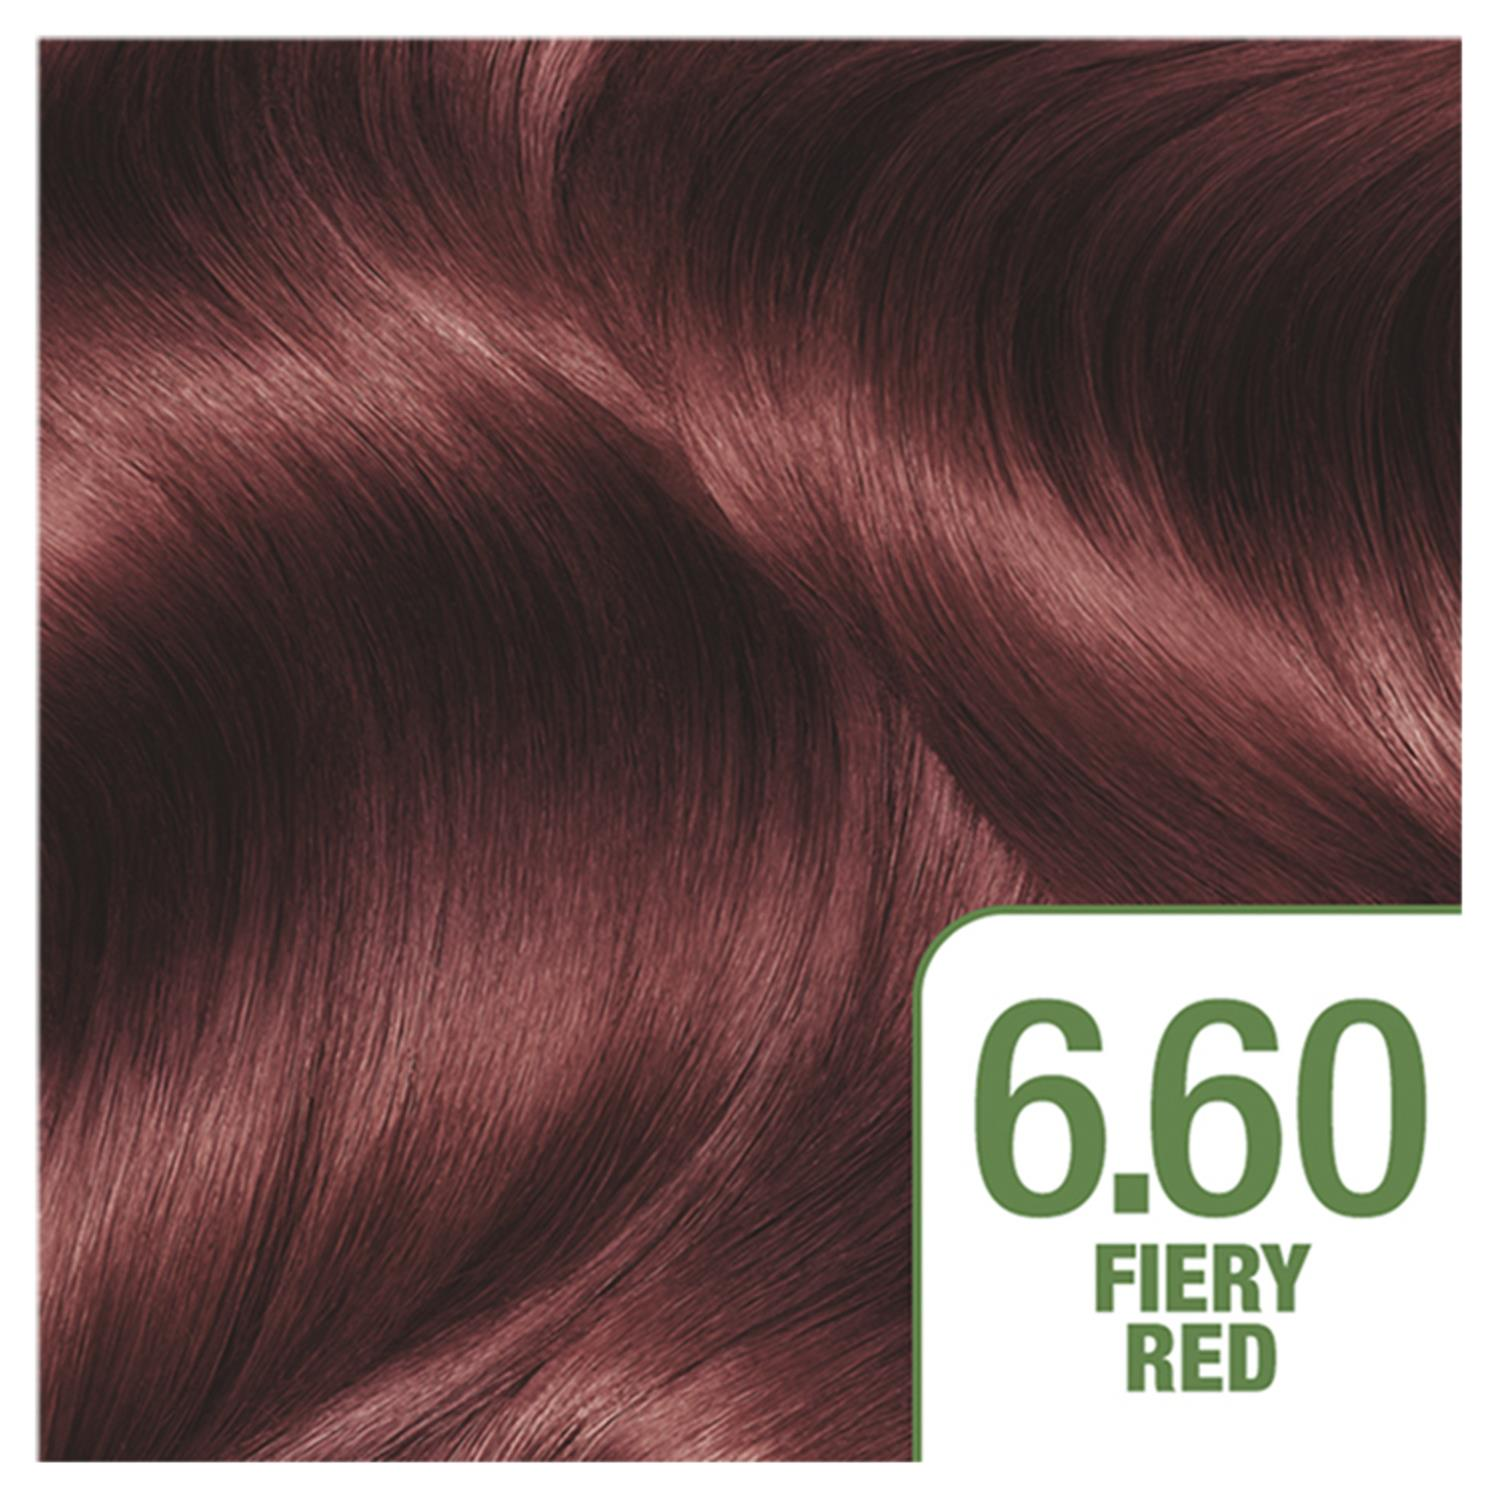 thumbnail 209 - 3 Pack Garnier Nutrisse Permanent Hair Dye With Different Shades